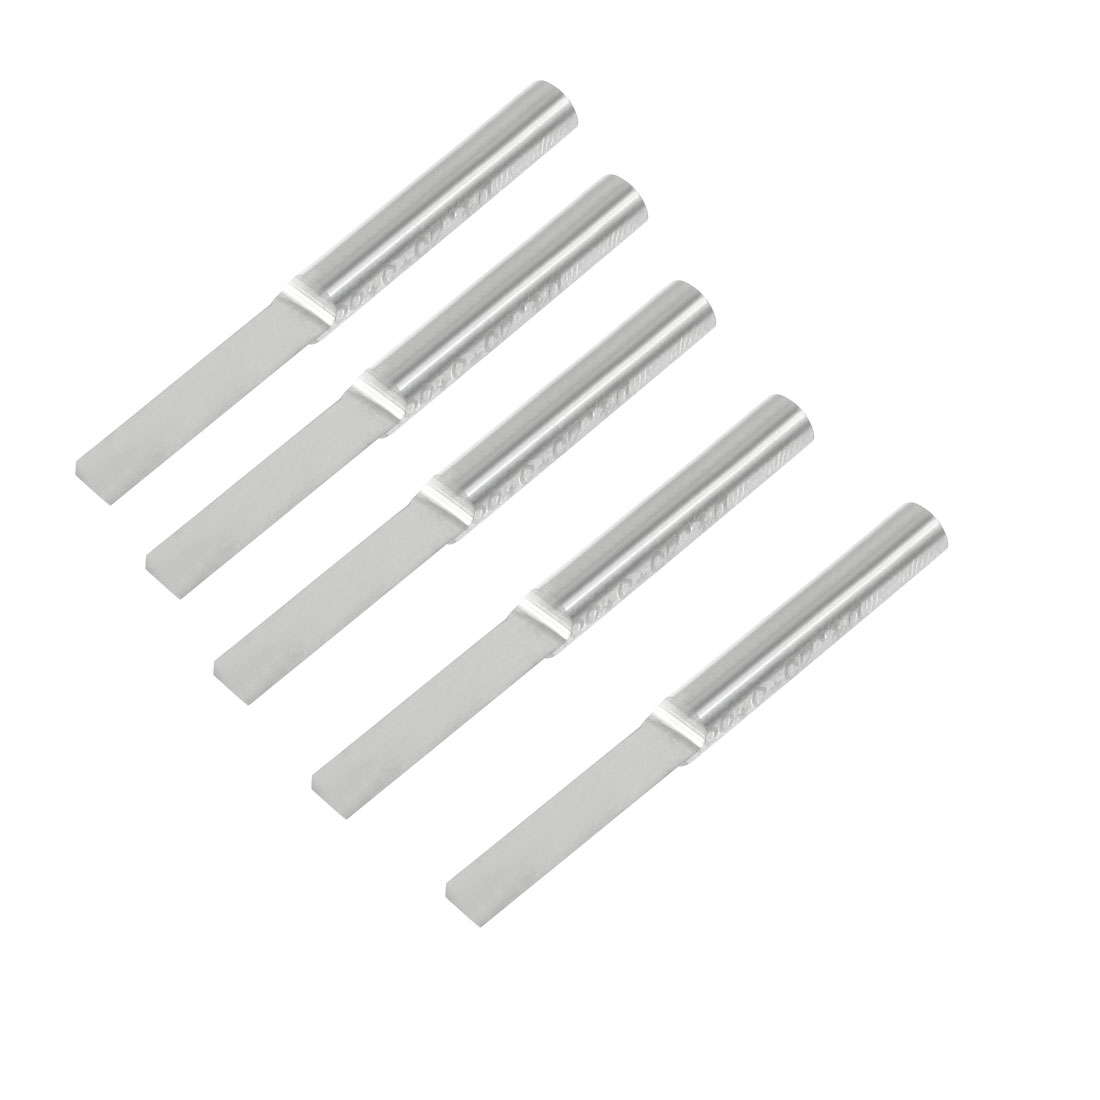 "5 Pcs 5/32"" Shank 4mm Blade Width Single Flute Straight Router Bits"